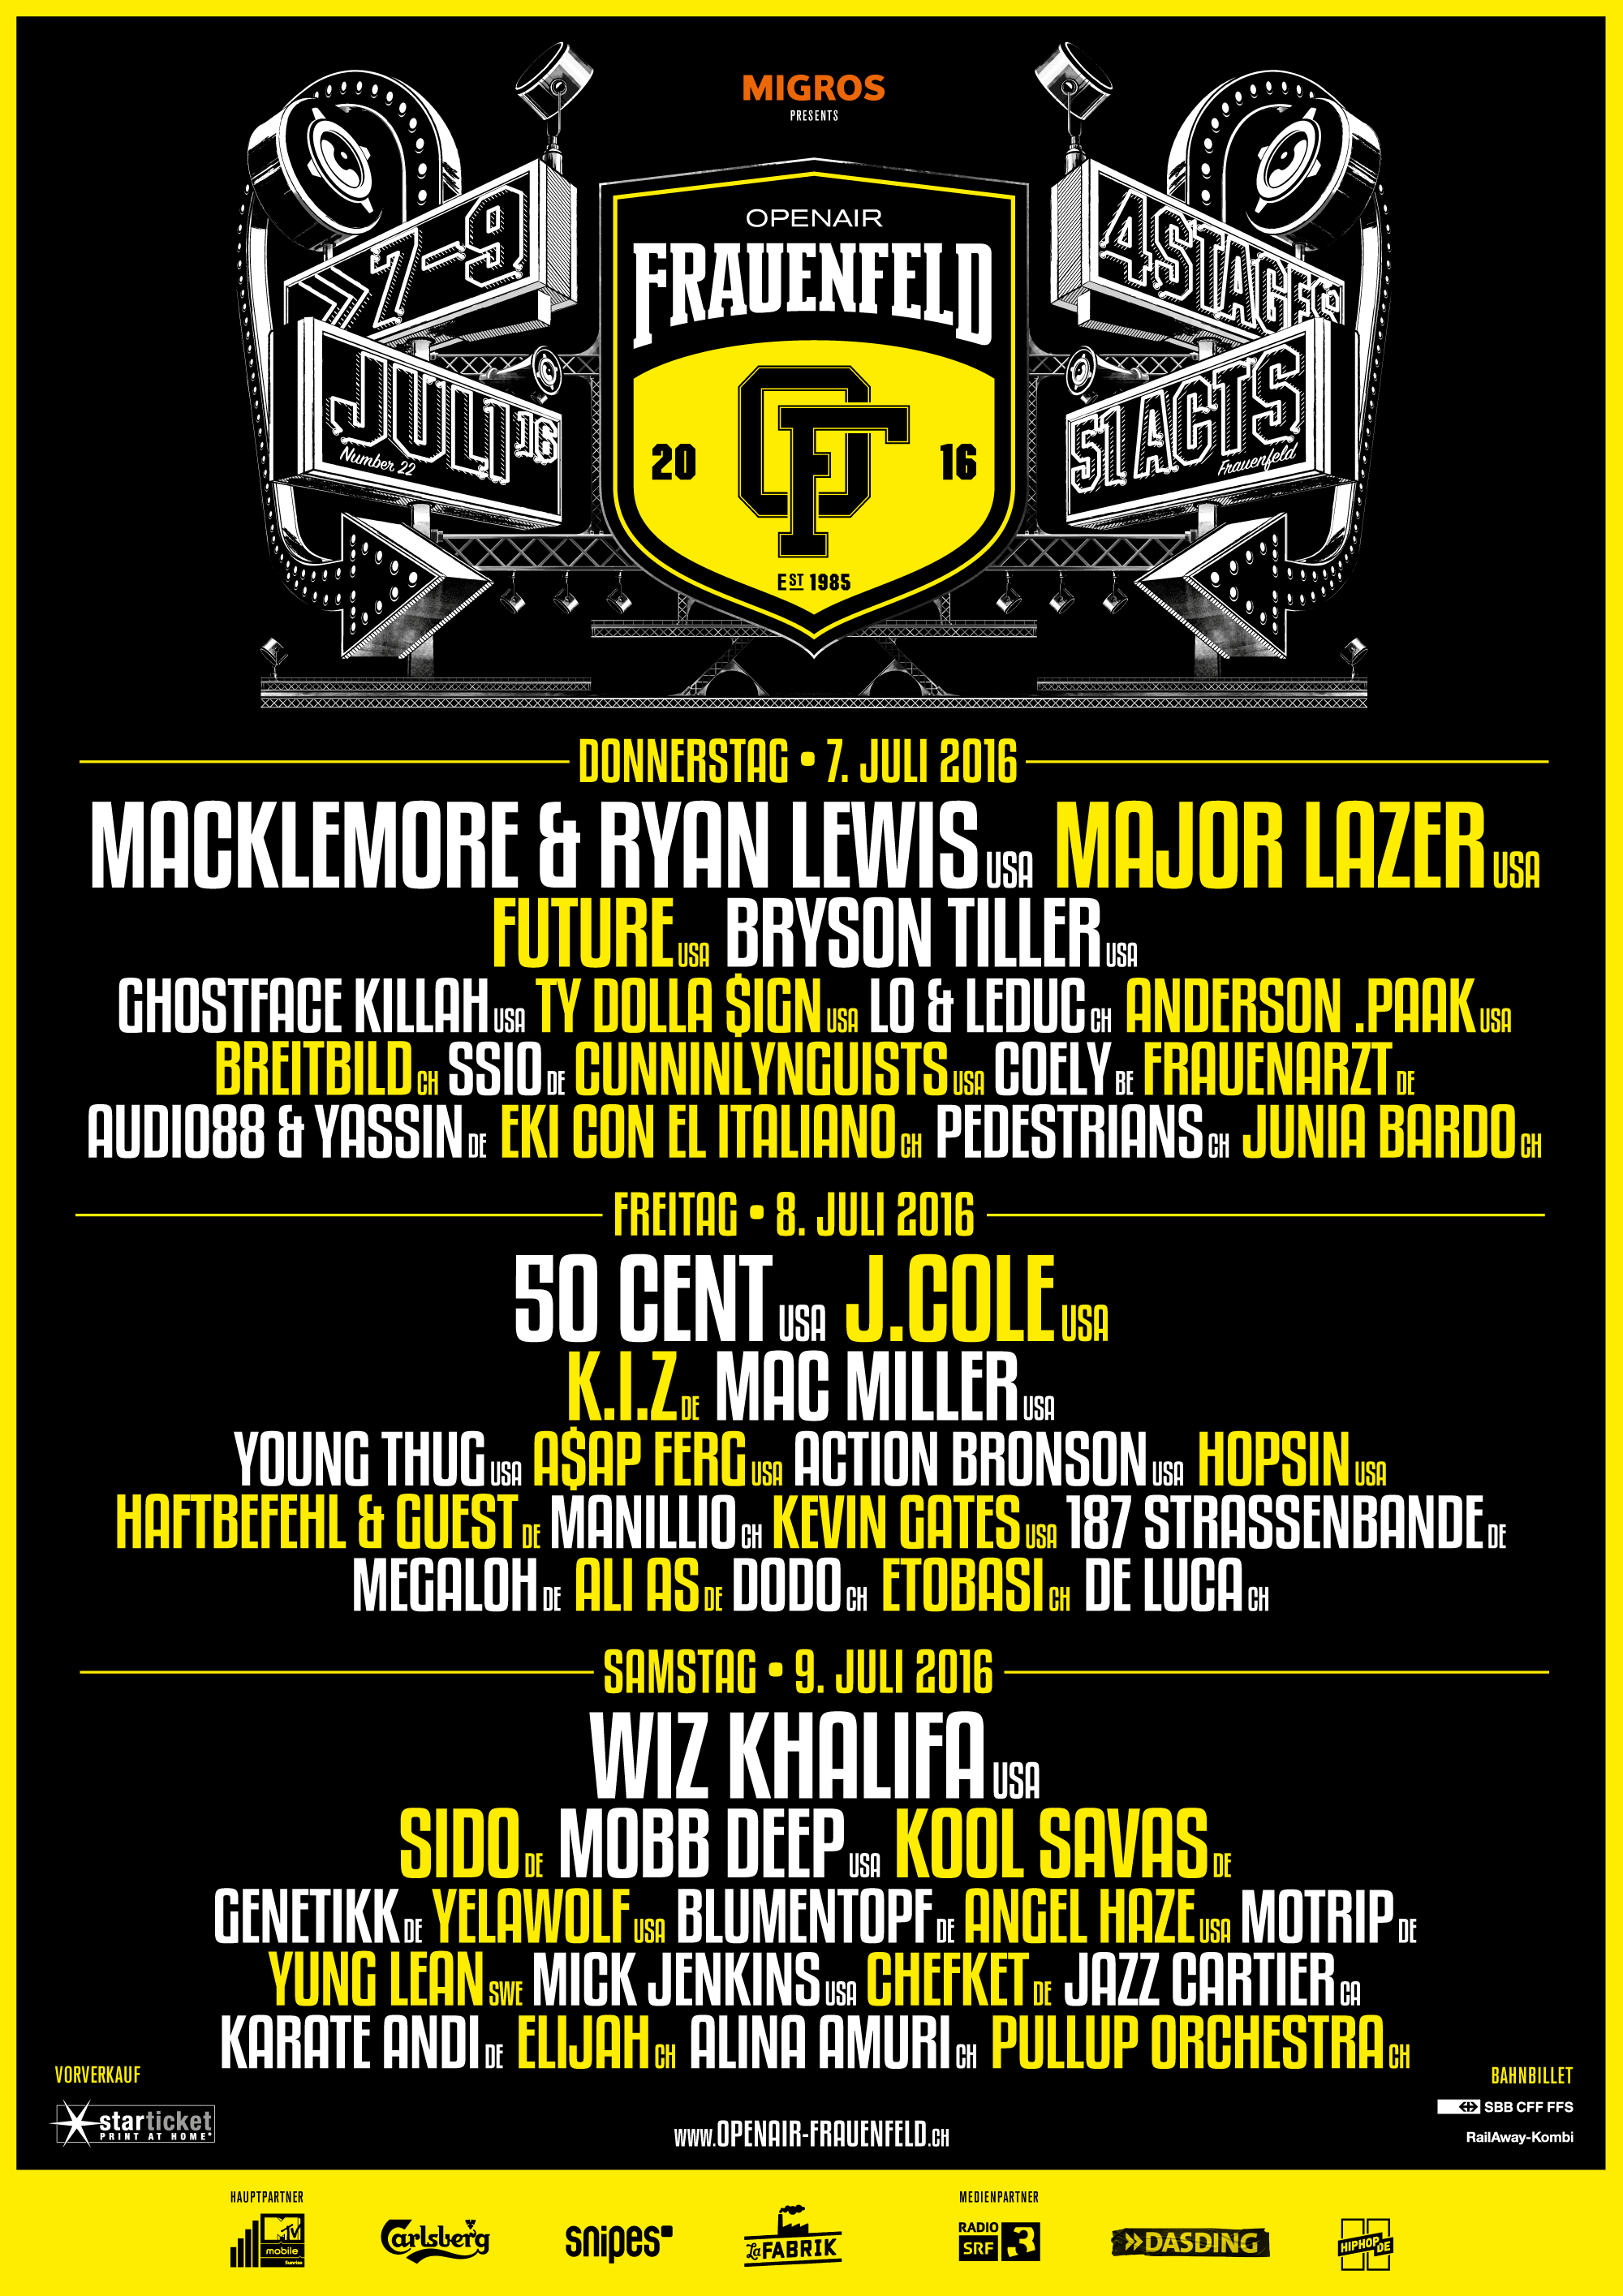 openair_frauenfeld_final_flyer_2016.jpg